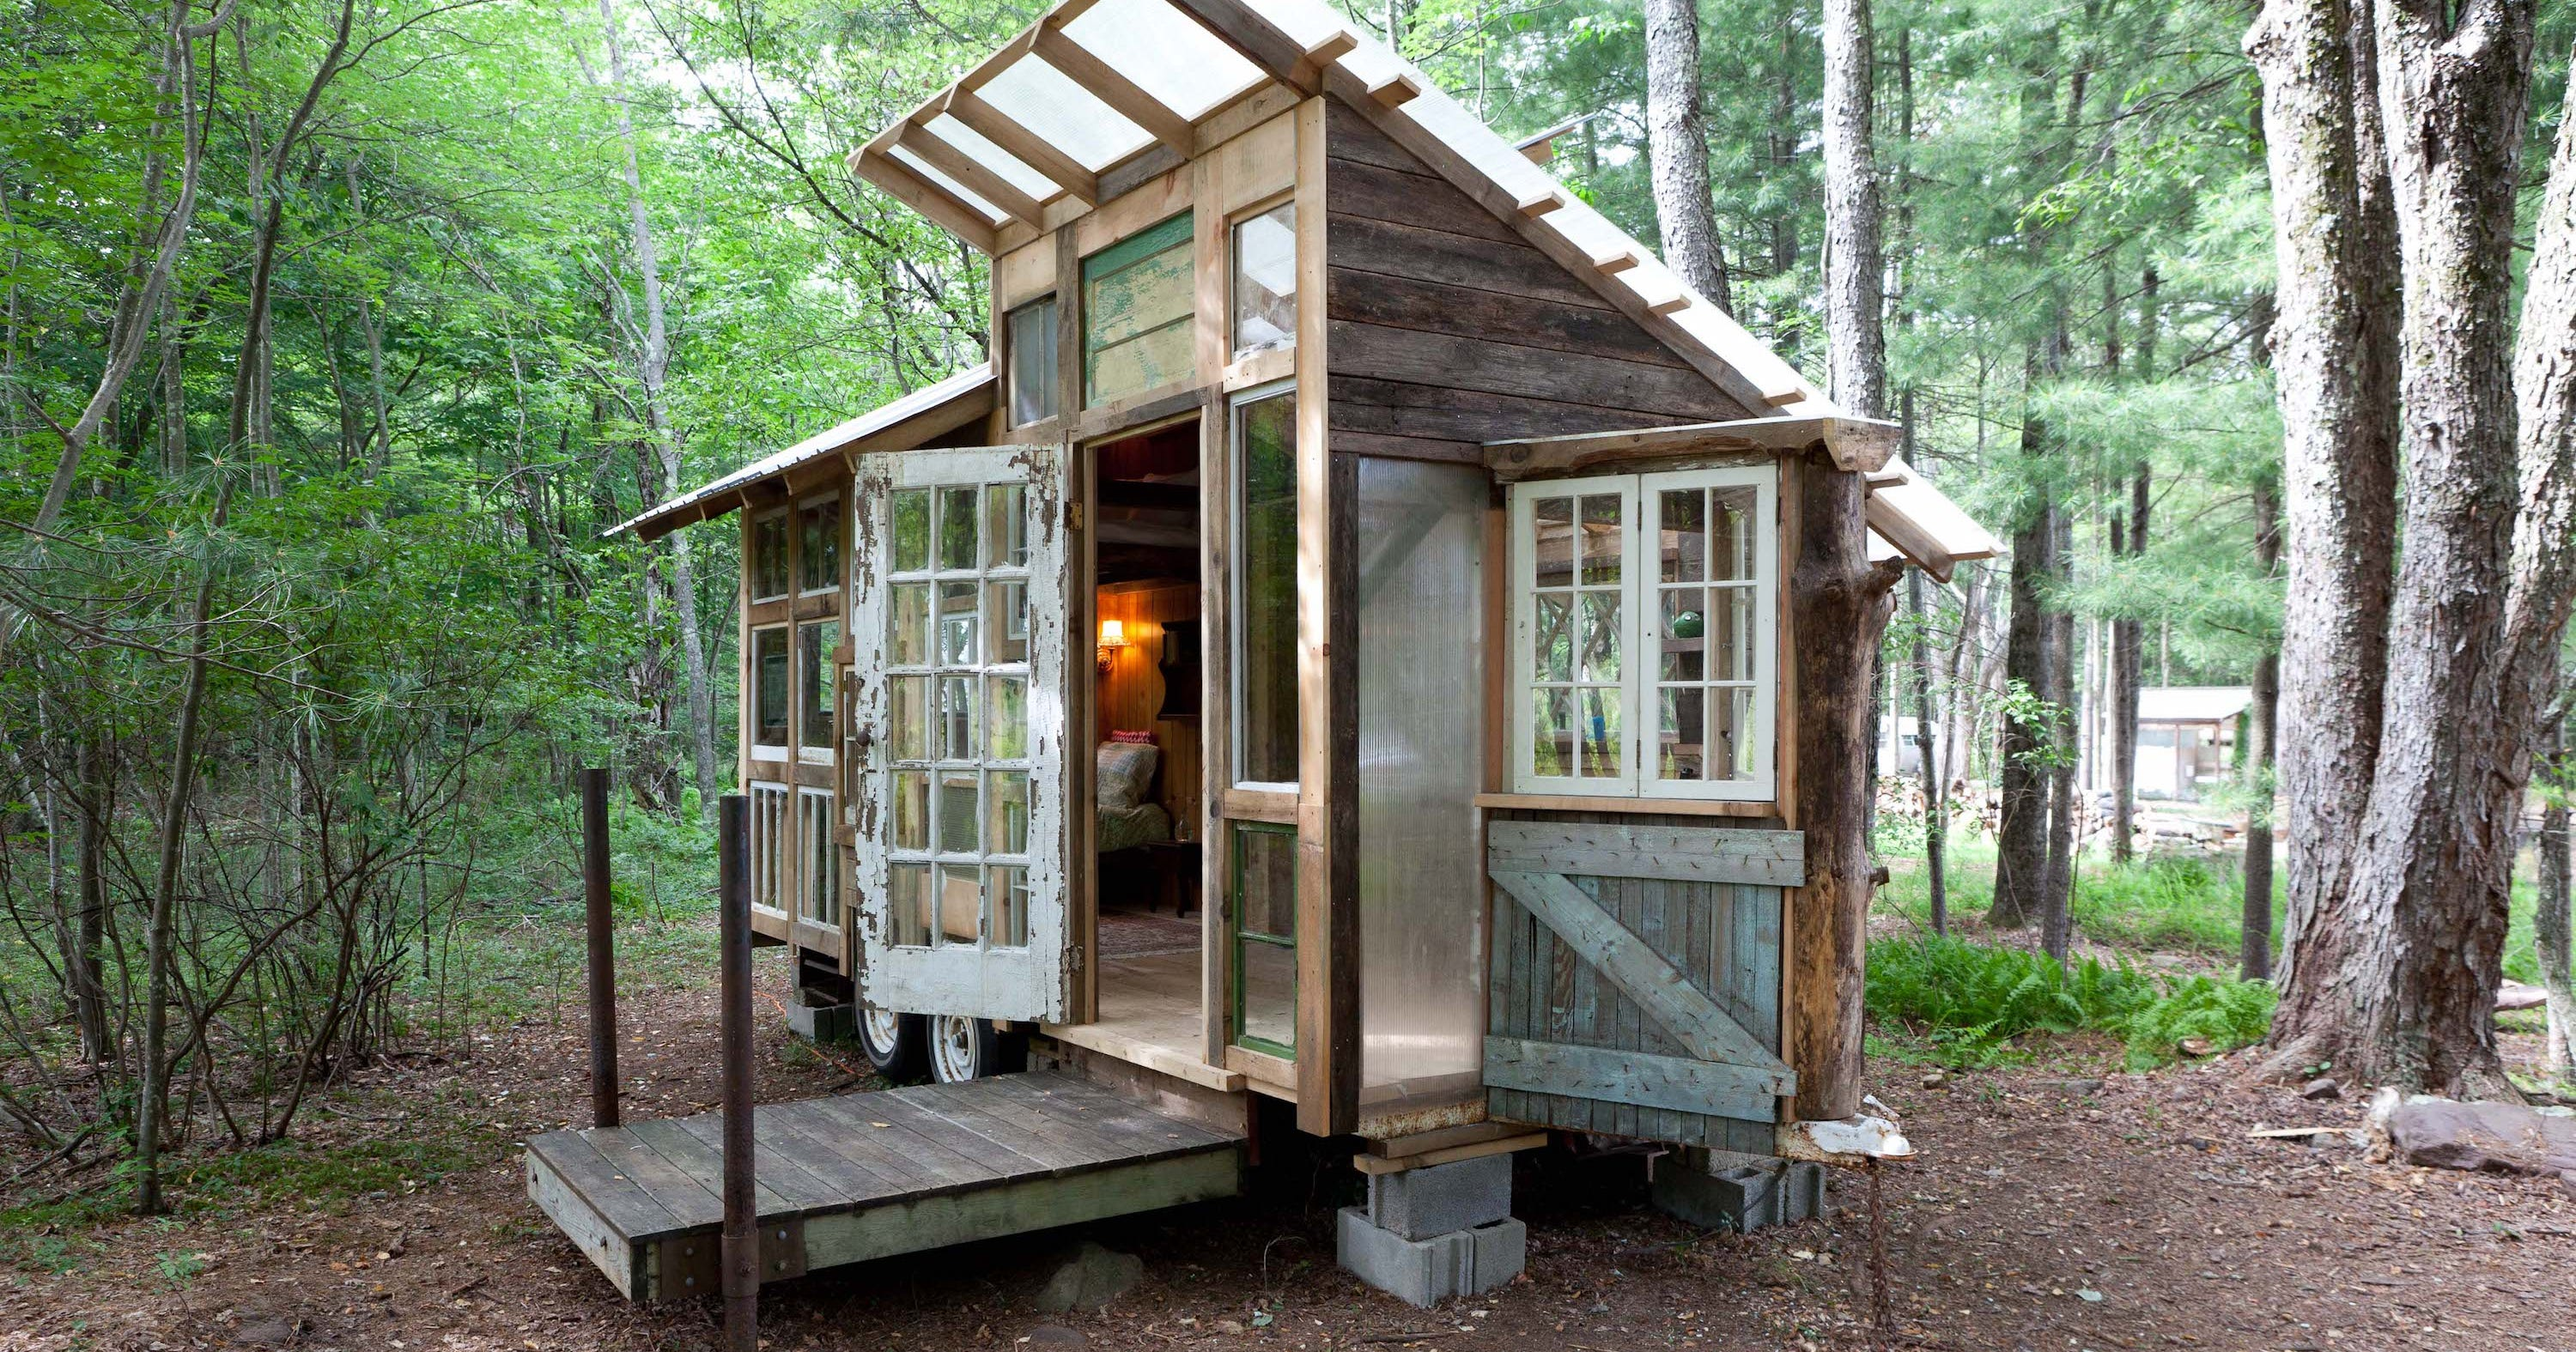 Best Tiny Houses To Rent On Airbnb In The World 2019